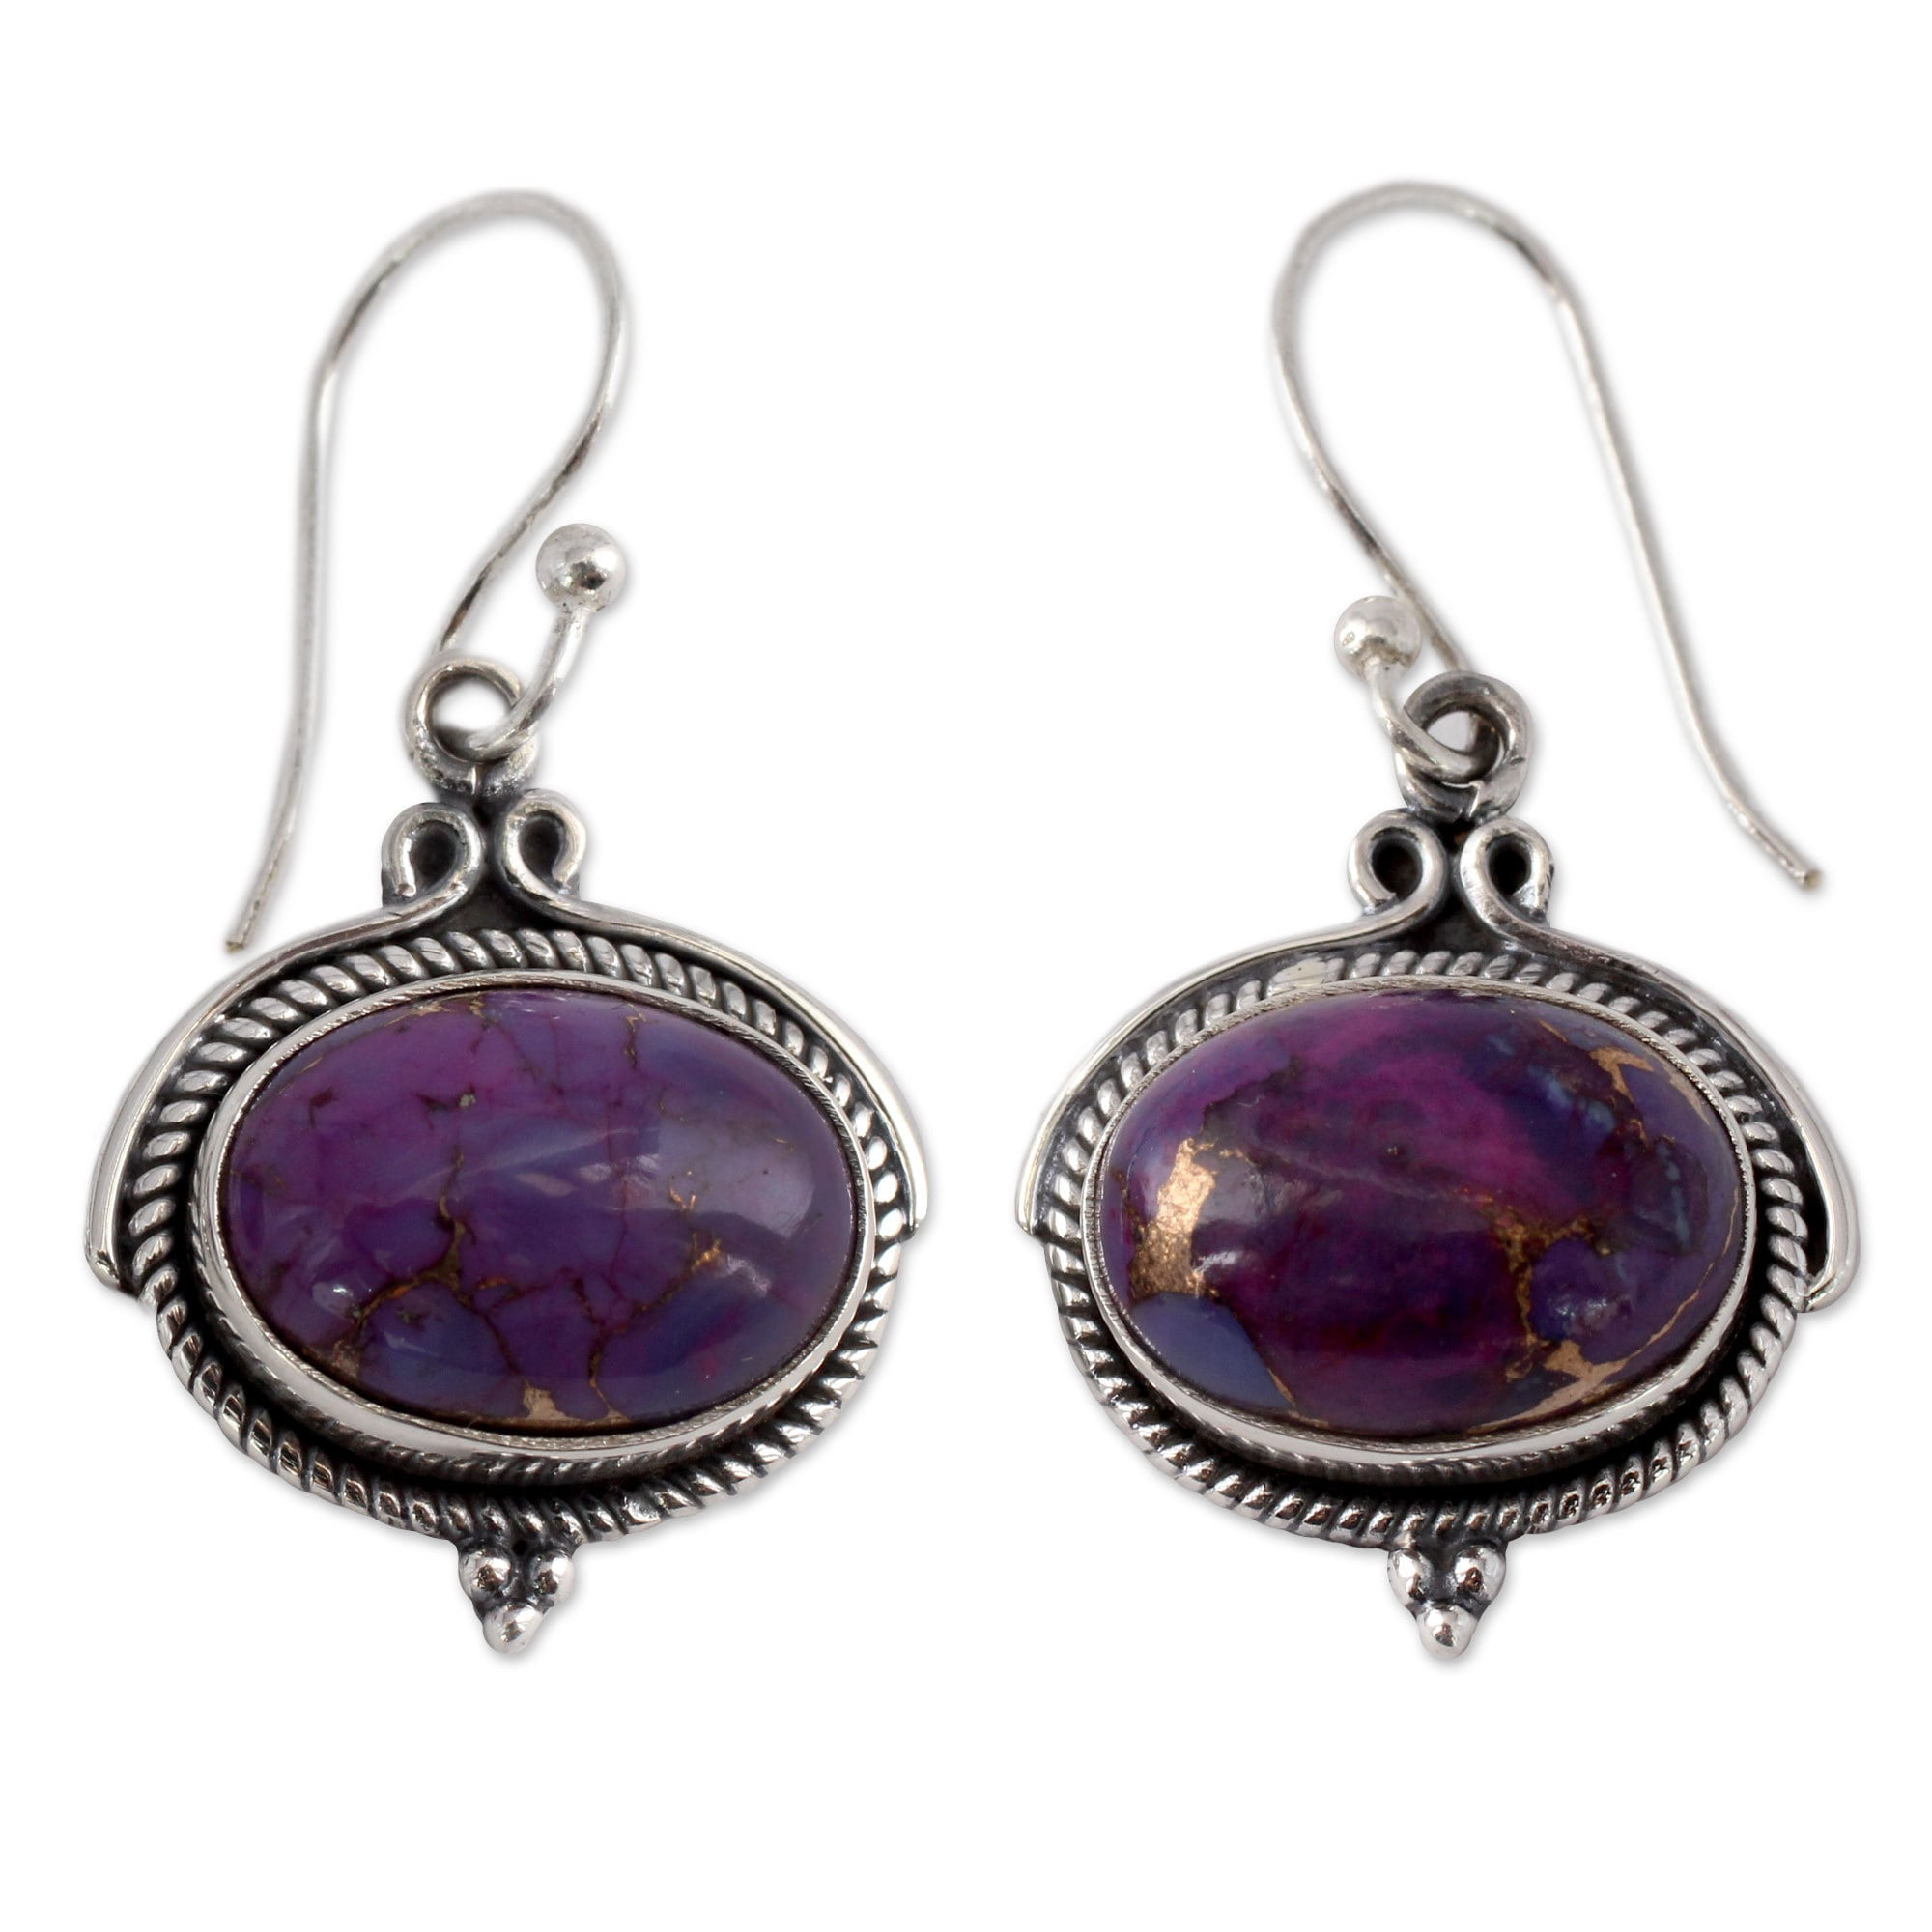 Handmade Sterling Silver Royal Purple Turquoise Earrings India Free Shipping On Orders Over 45 10038002